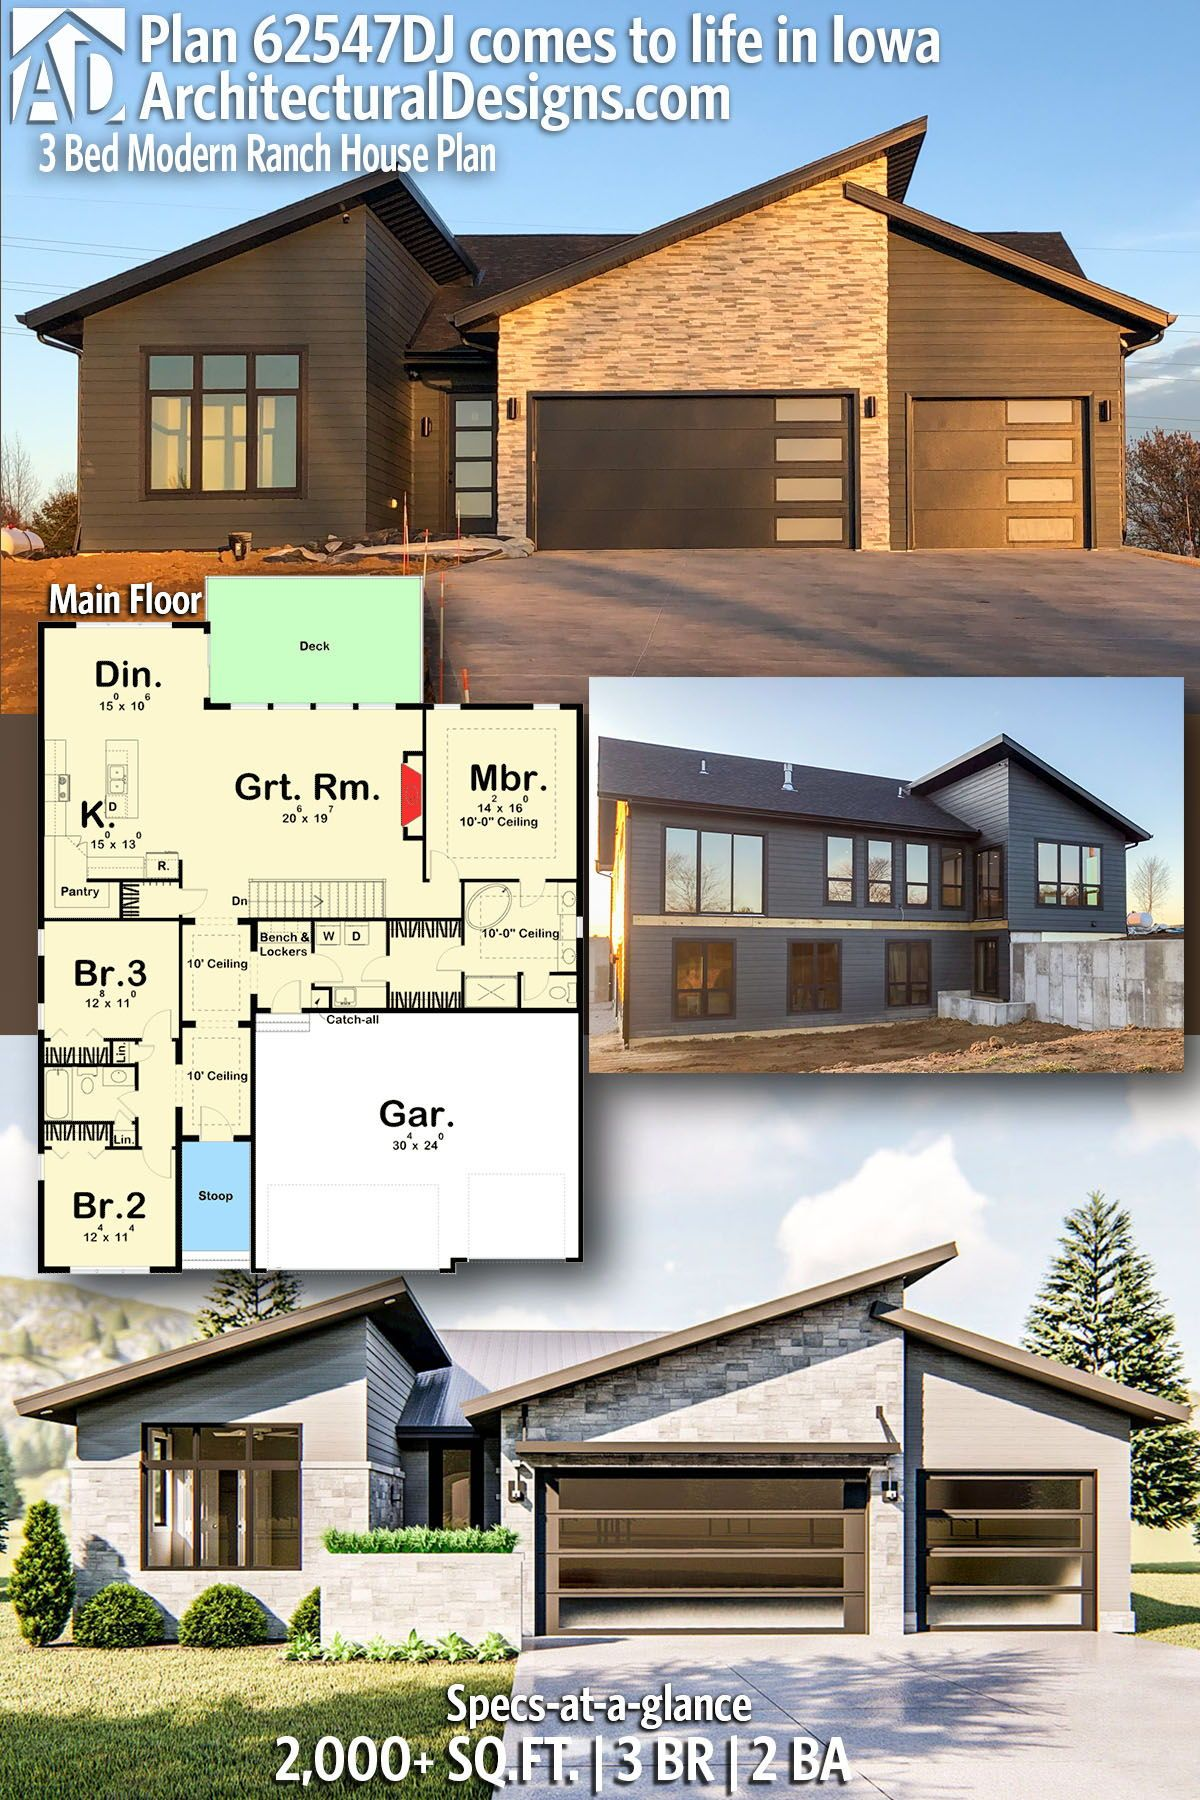 Plan 62547dj 3 Bed Modern Ranch House Plan House Plans House Plans For Sale Ranch House Plan